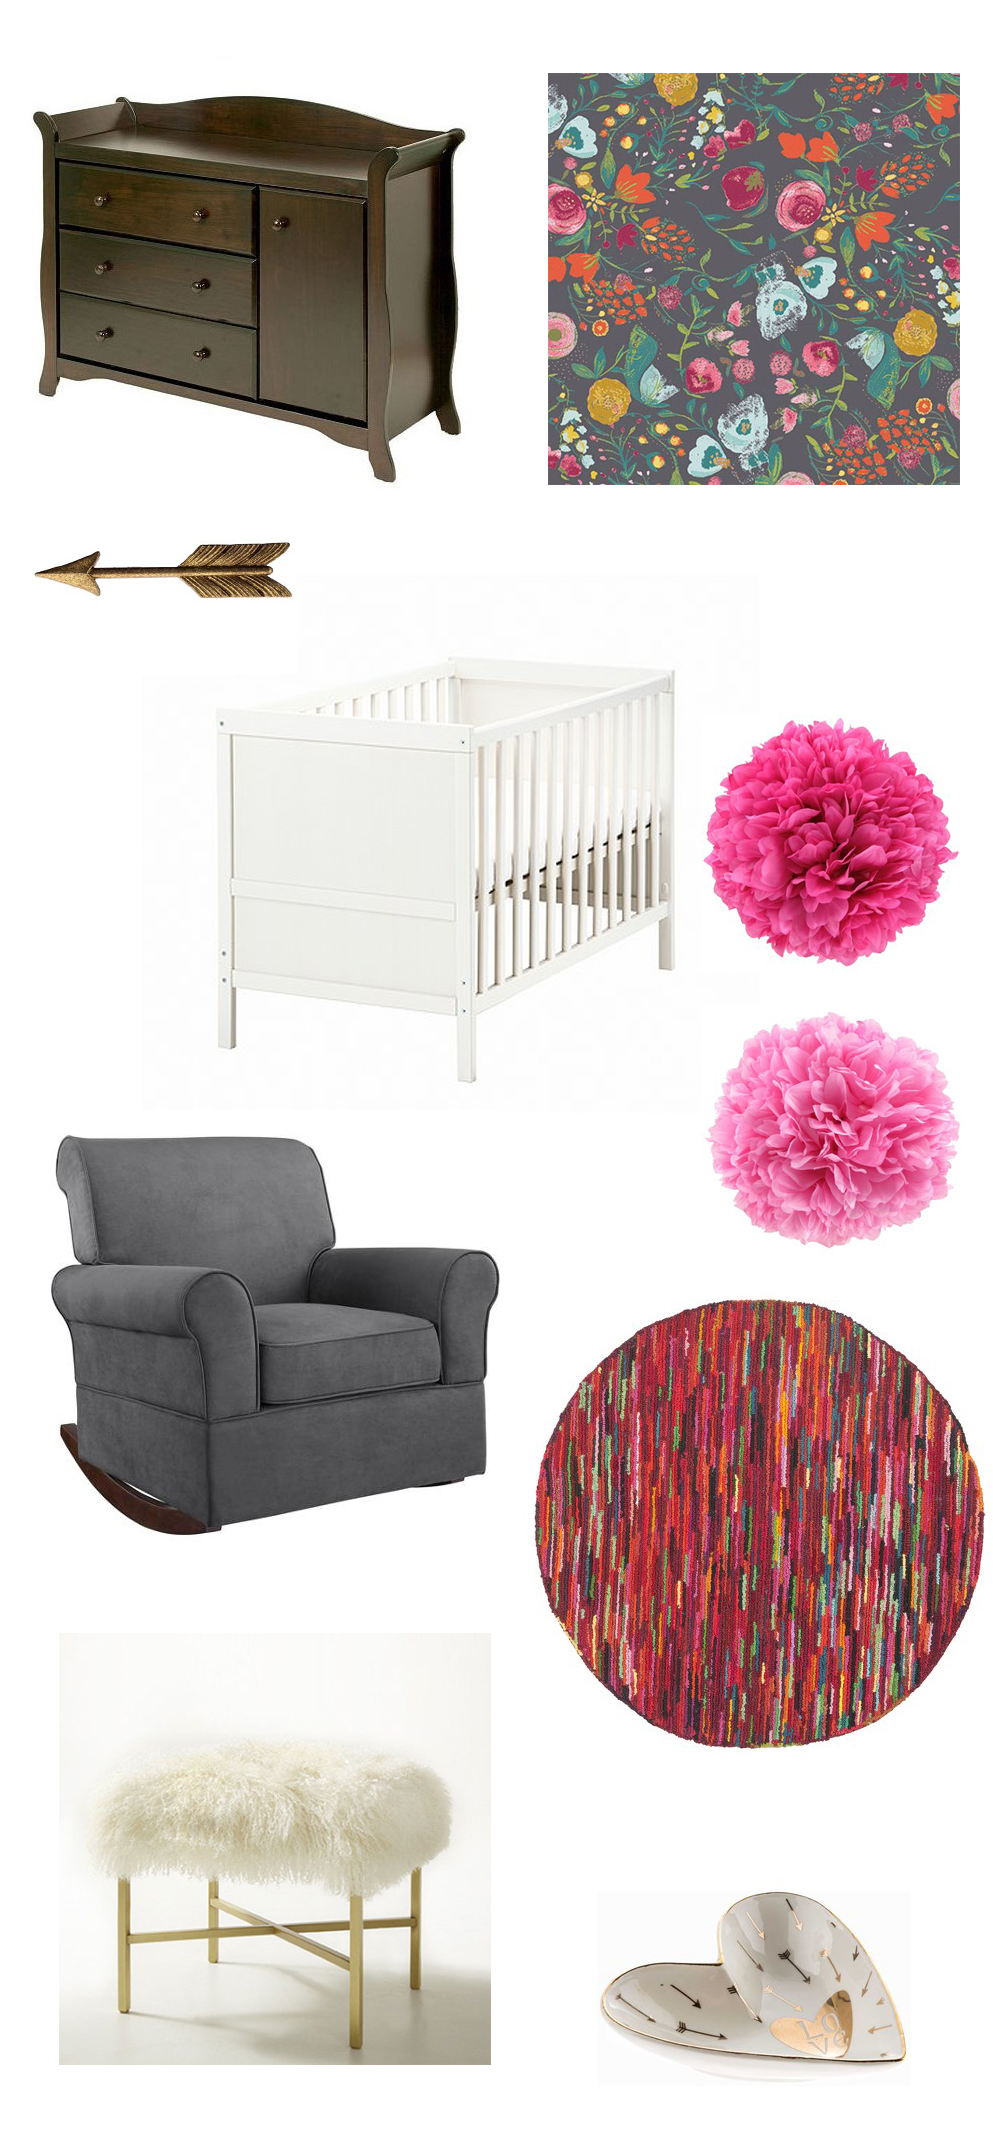 My Fairweather Baby Nursery Inspiration Board copy.jpg